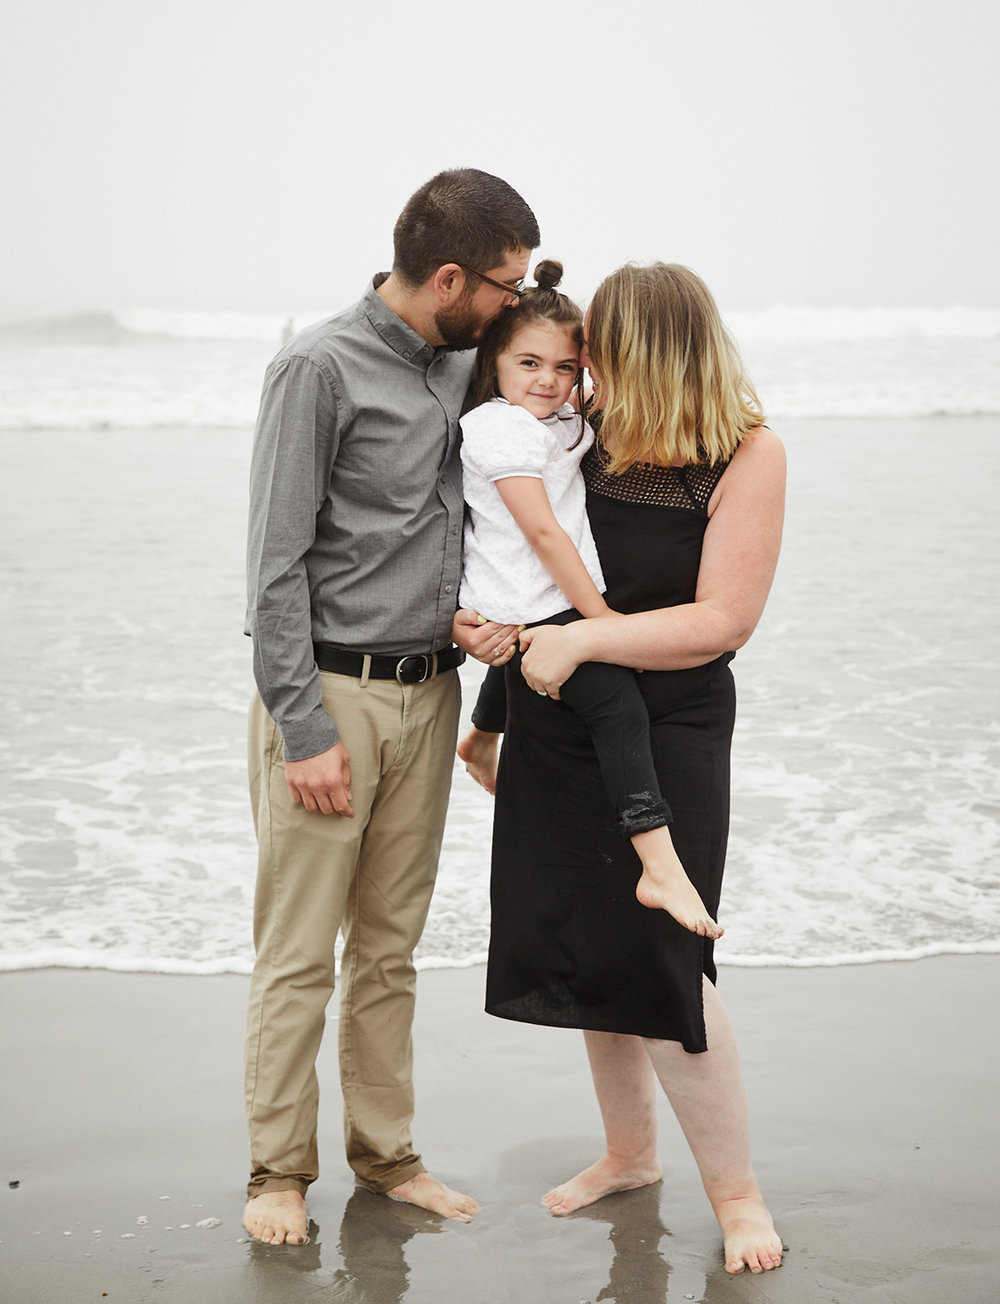 170912_FamilyBeachPhotography_NJPhotographer_By_BriJohnsonWeddings_0009.jpg